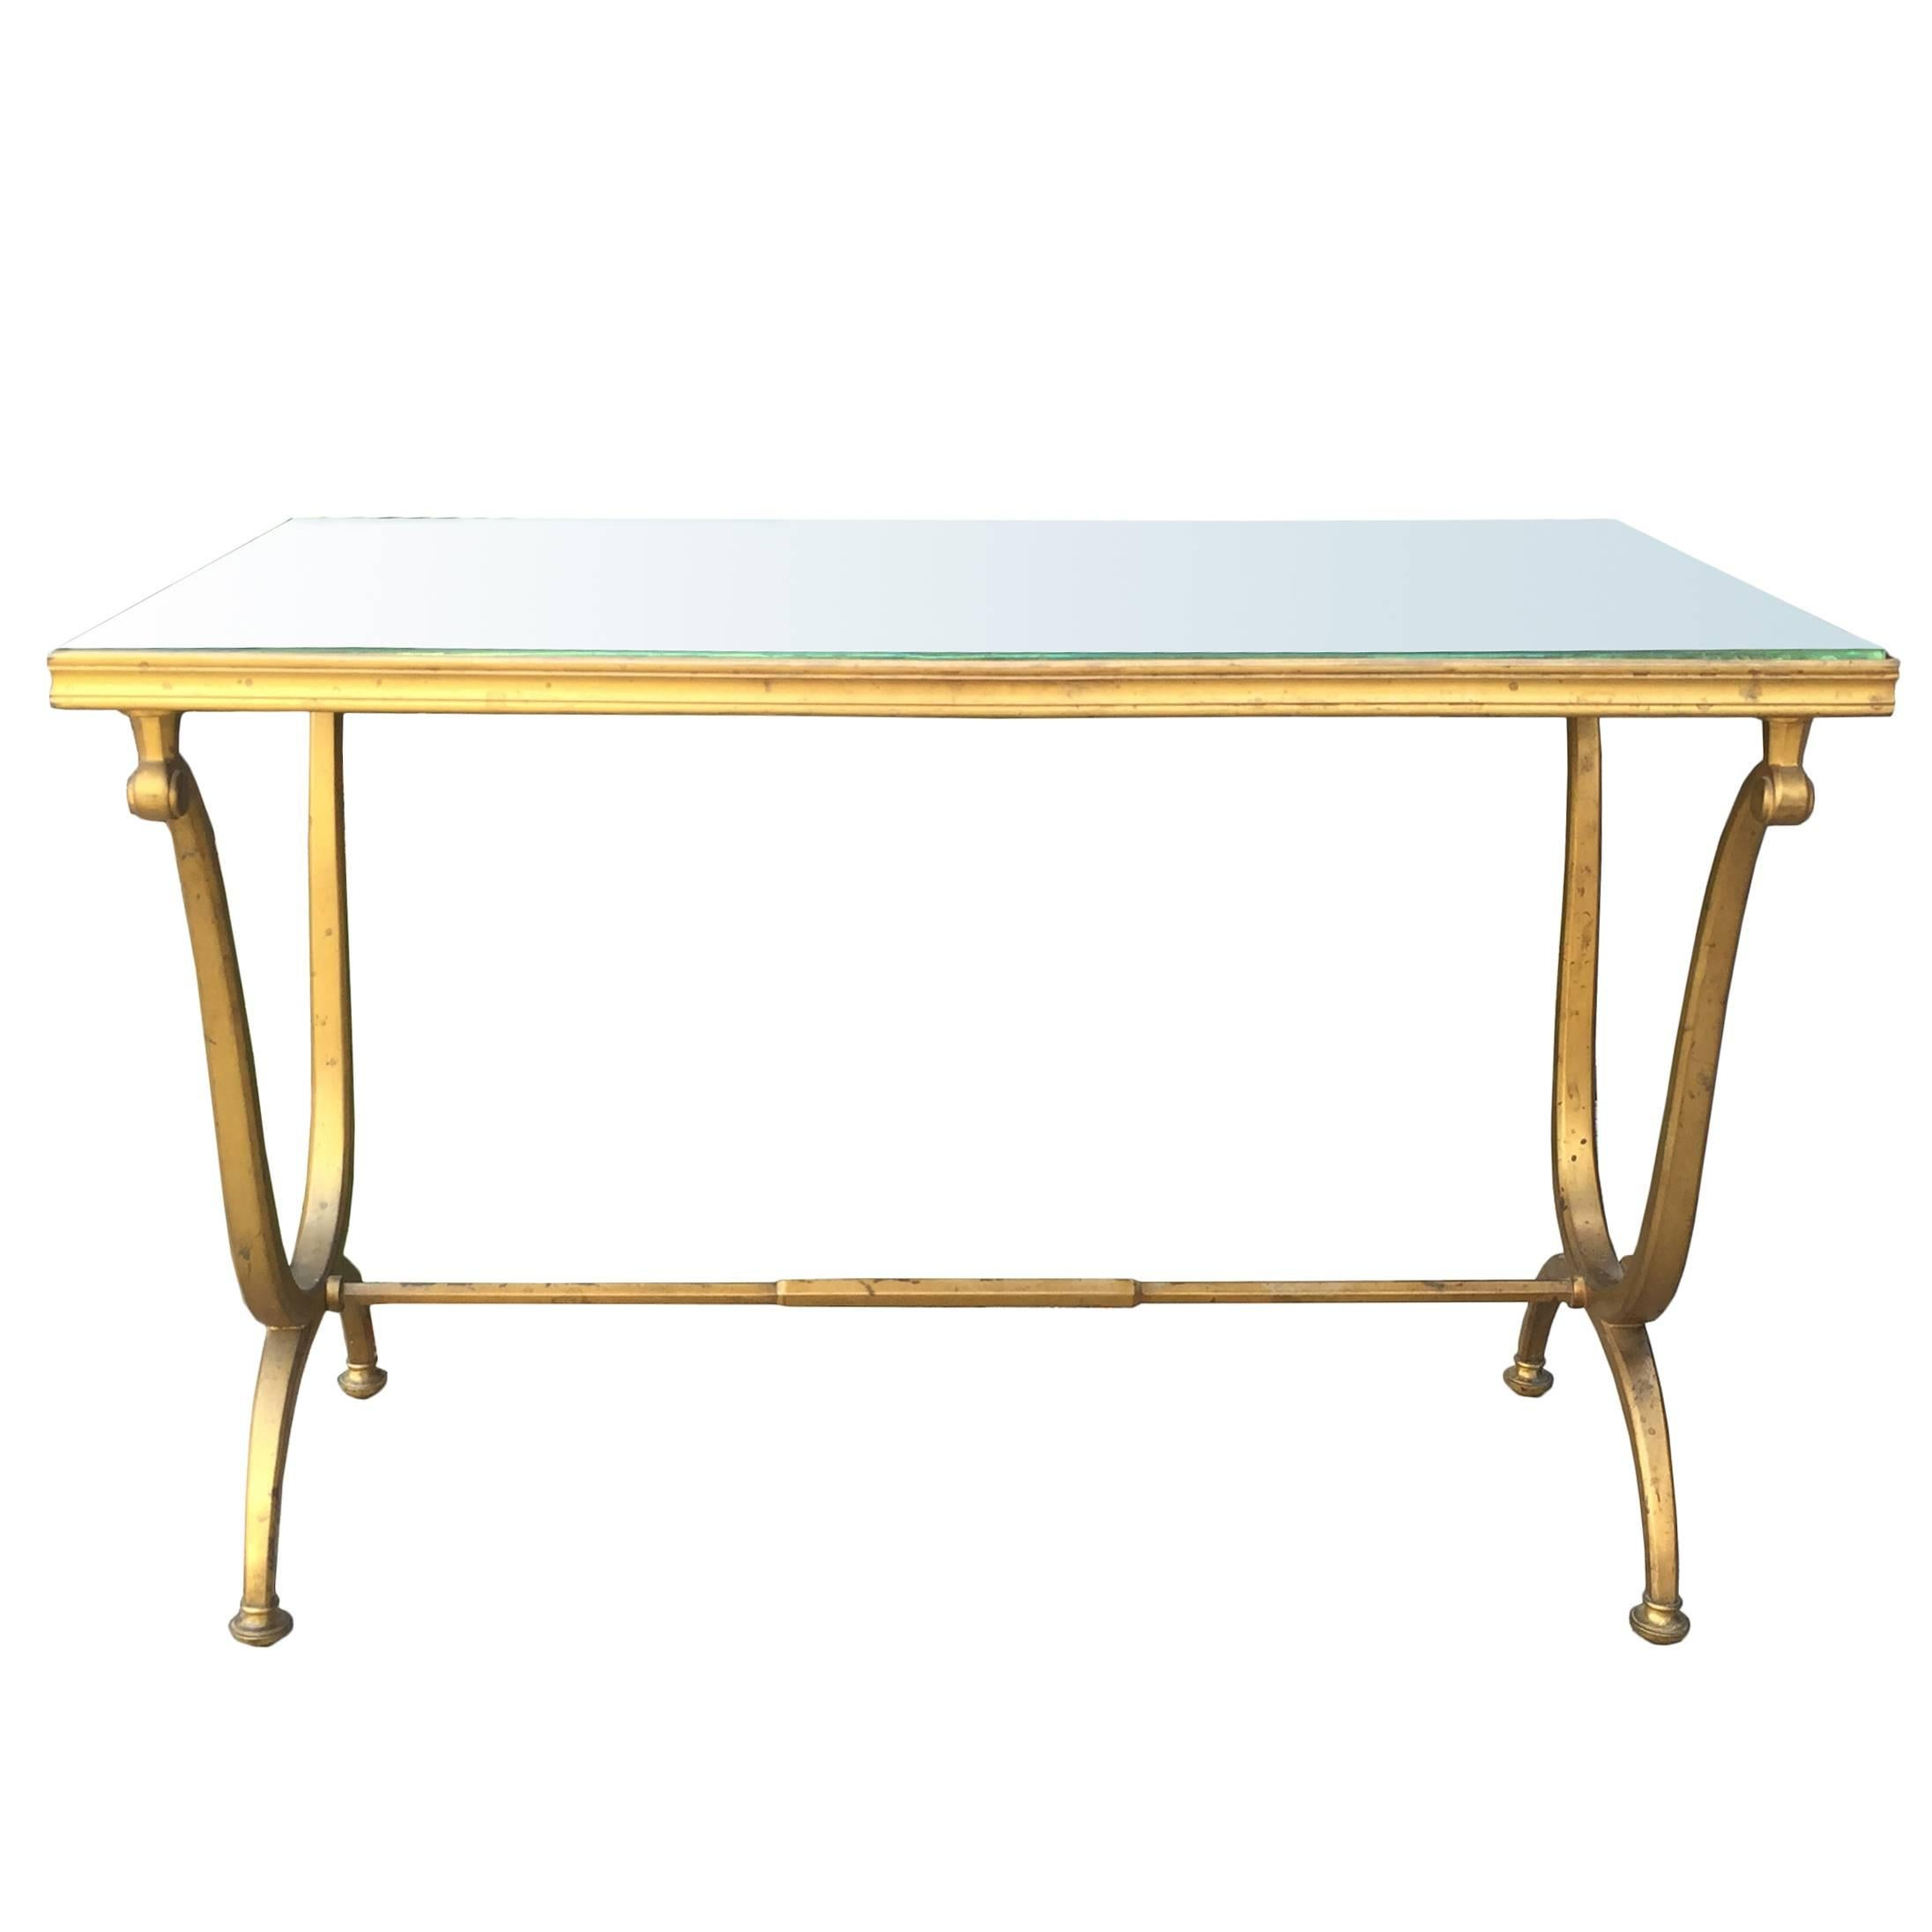 1940s French Bronze Table with Mirrored Top